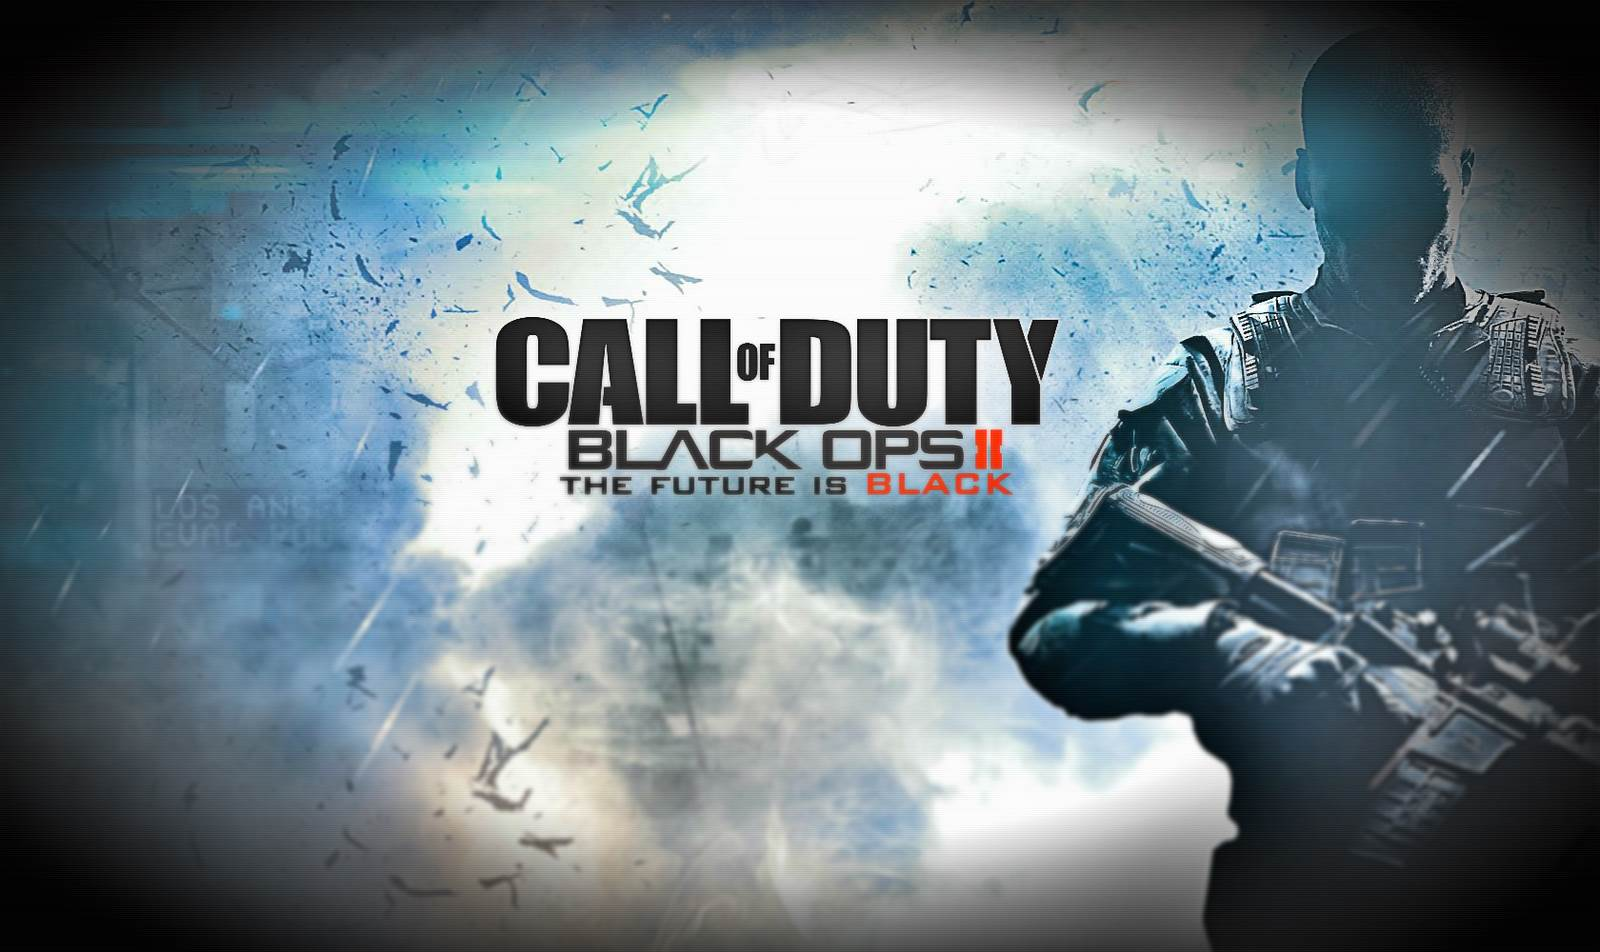 Call Of Duty: Black Ops II HD Wallpapers Backgrounds 1600x952